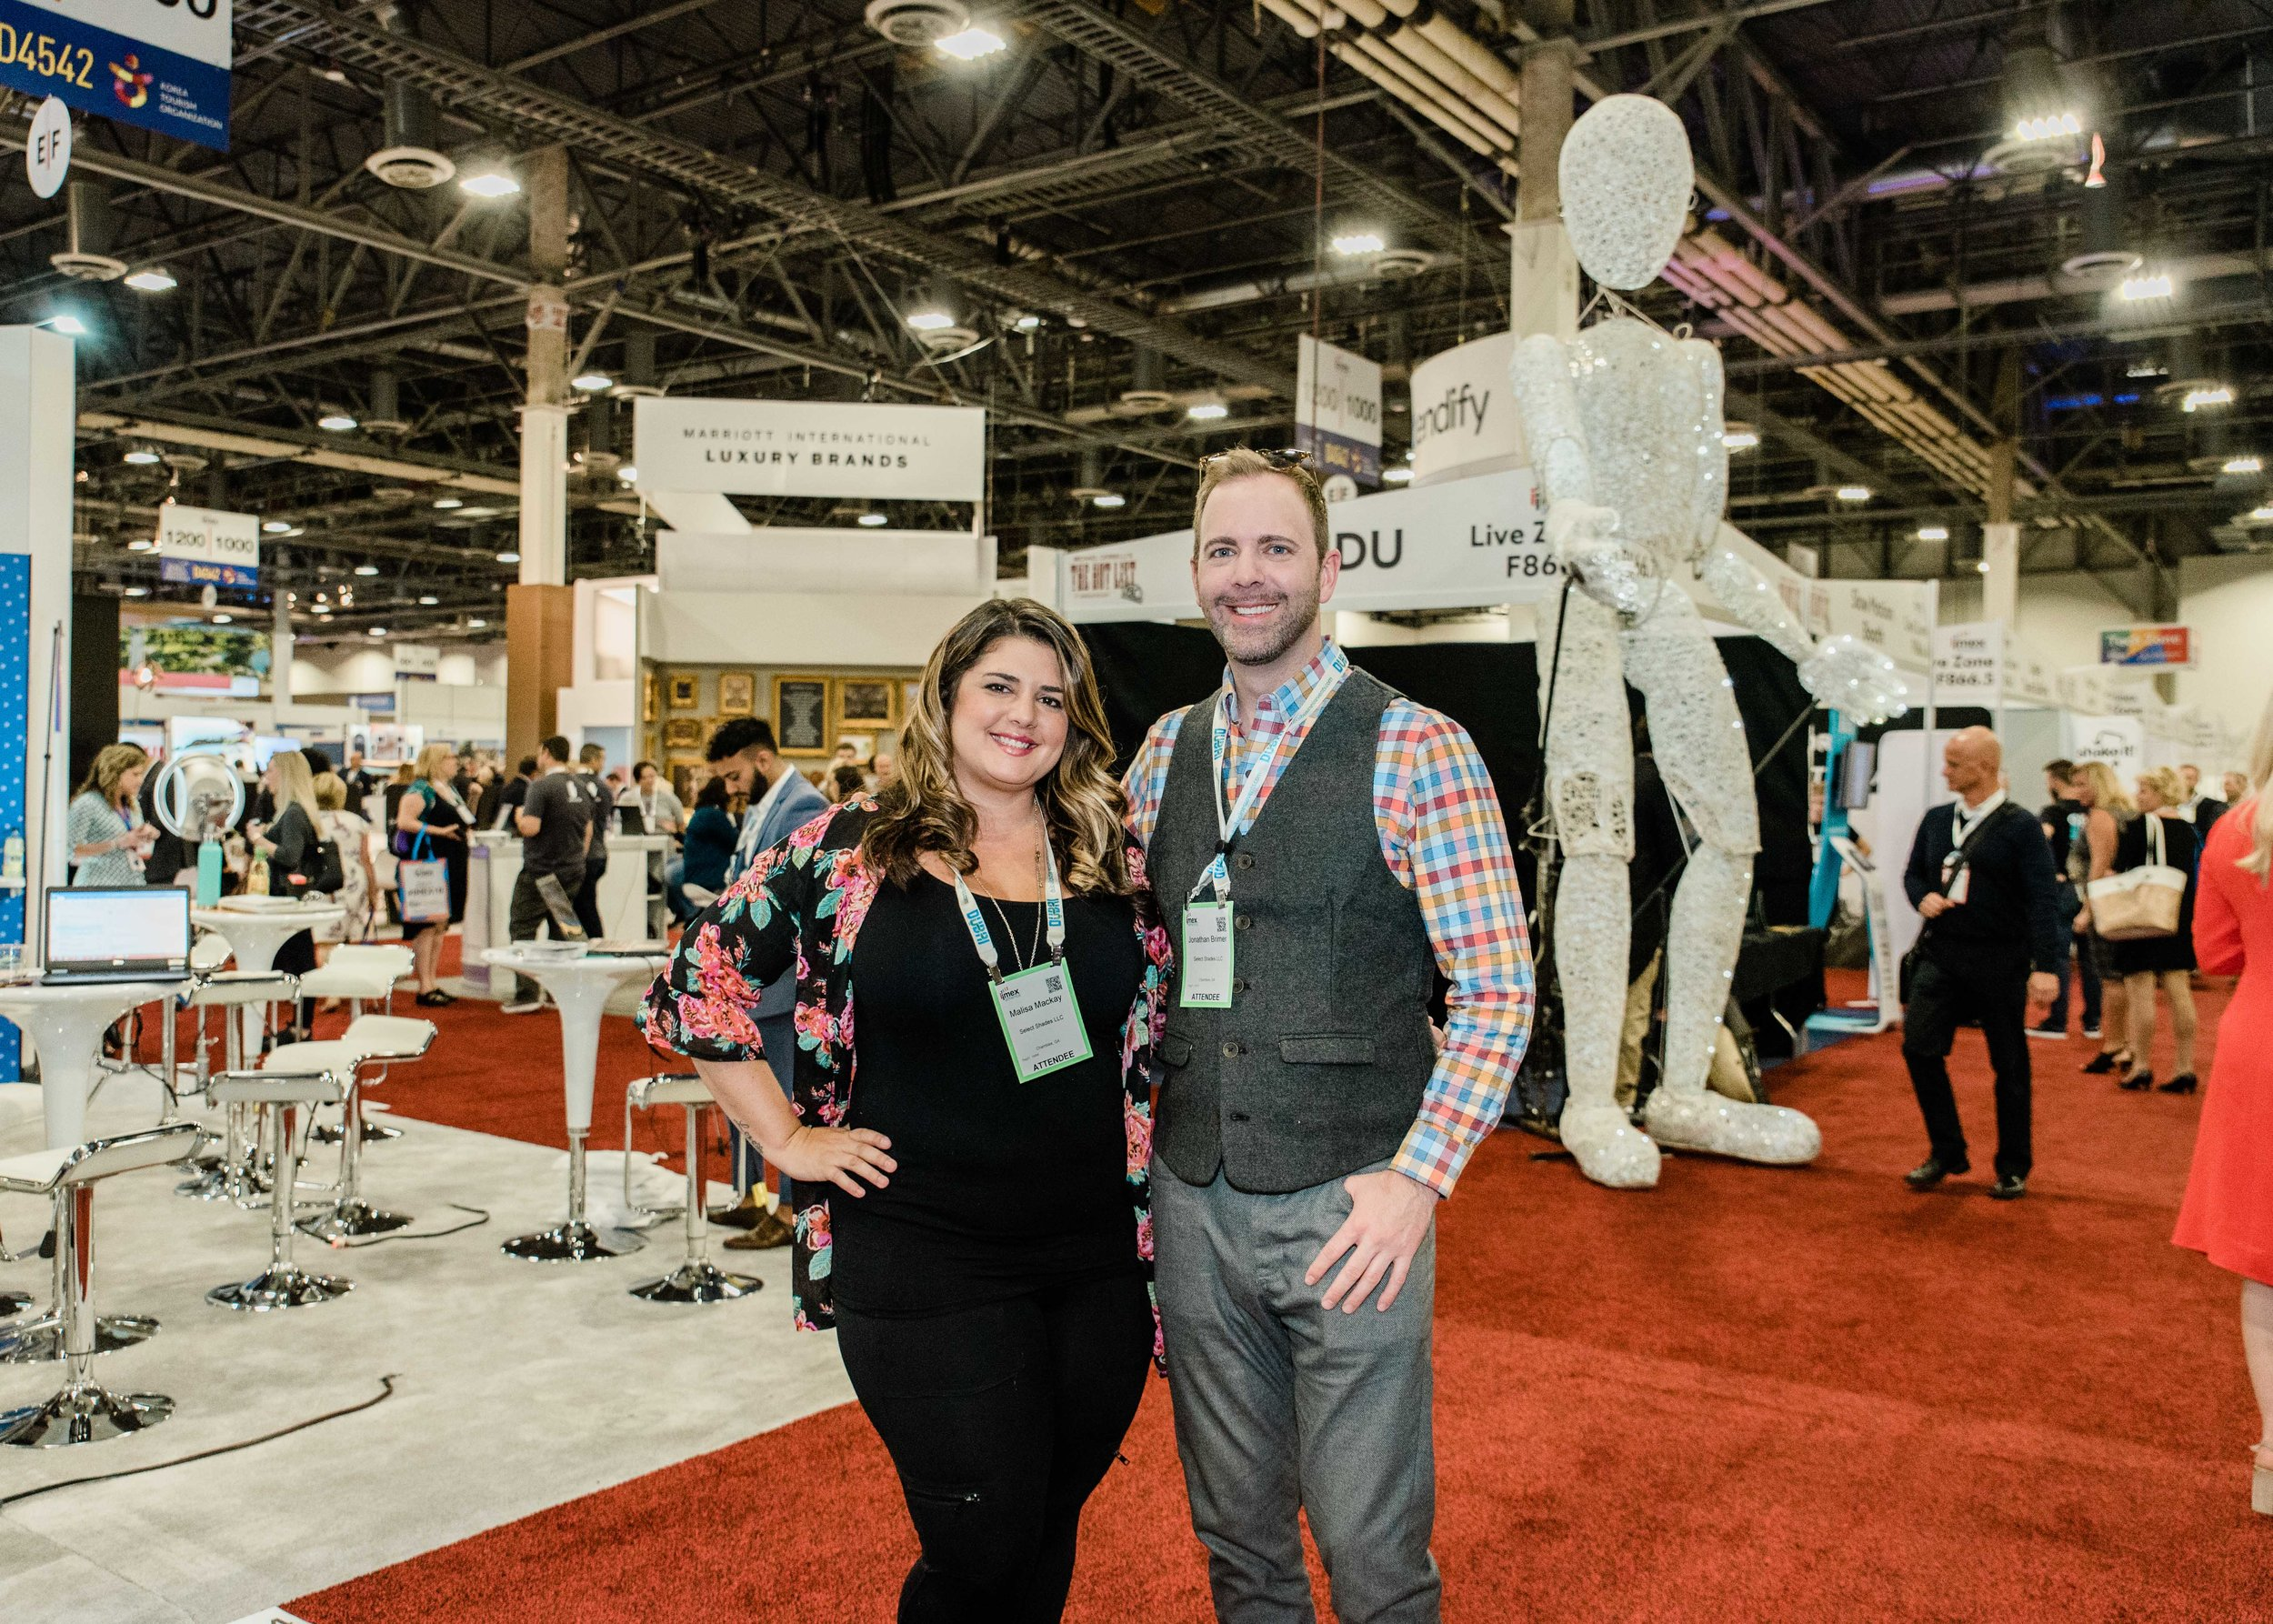 IMEX46_KelliPricePhotography_LasVegasNV_October2018.jpg